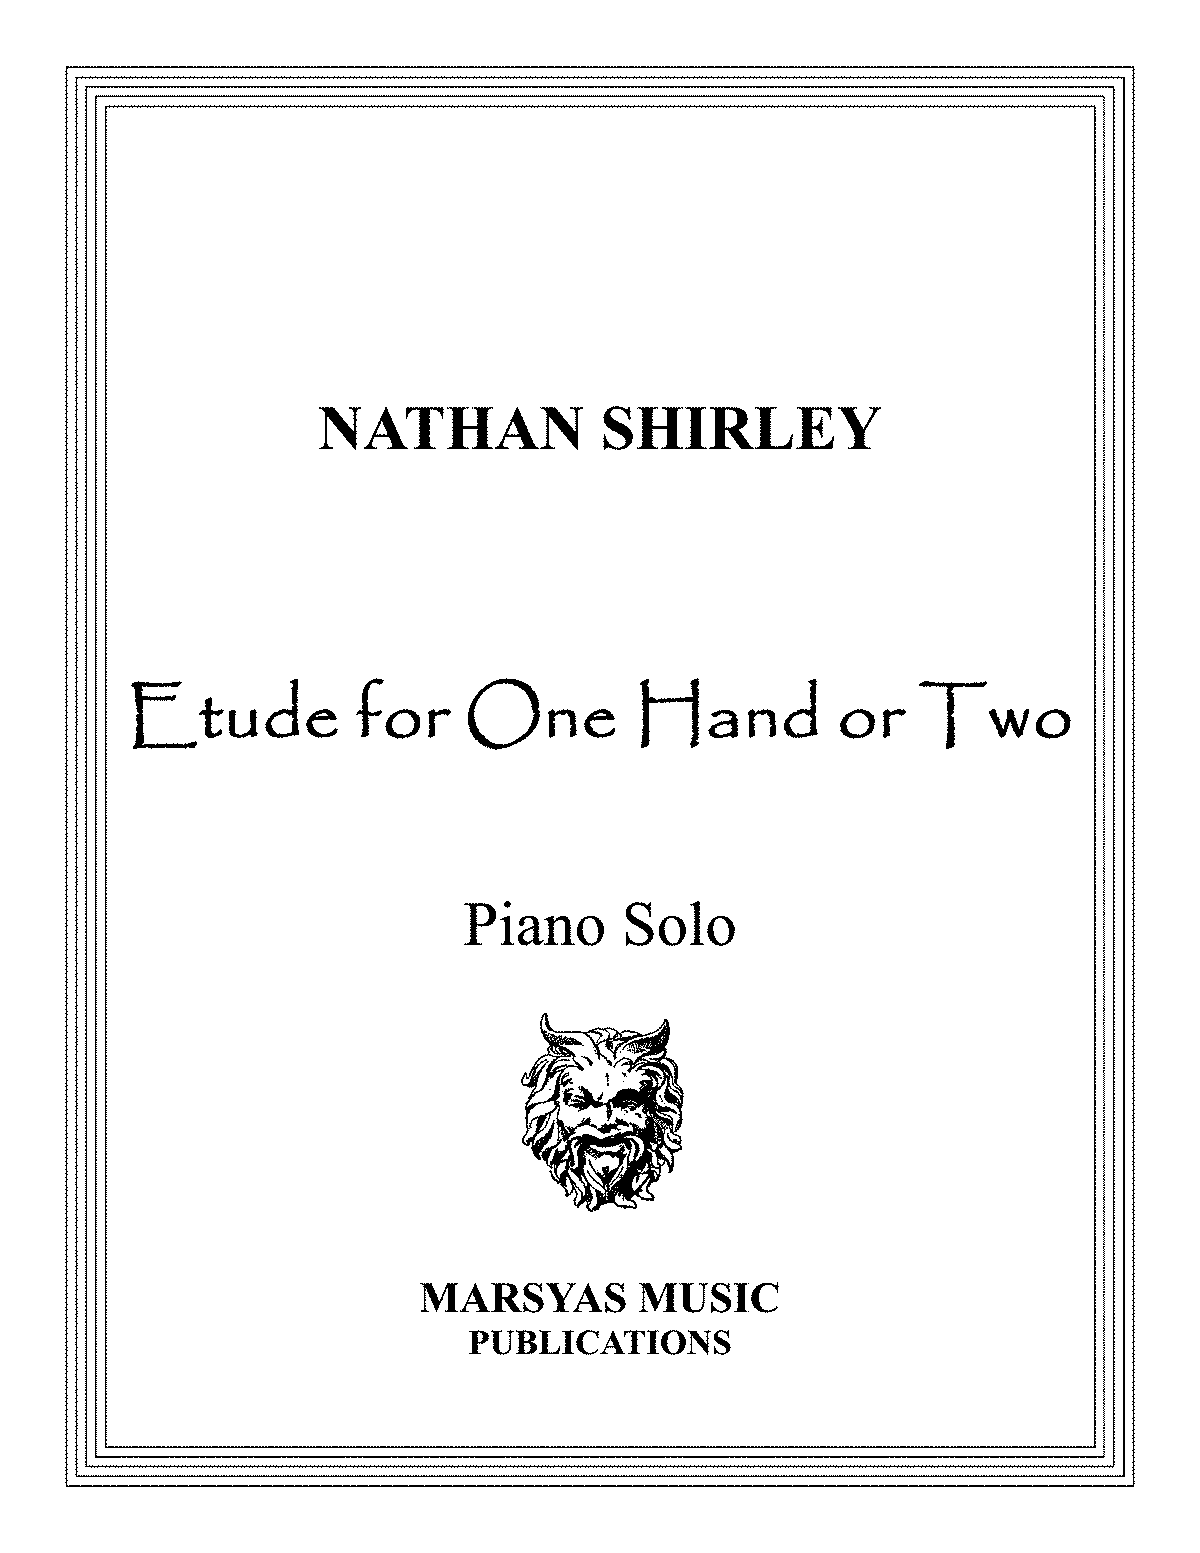 PMLP582871-Nathan Shirley- Etude for One Hand or Two -Piano Solo.pdf